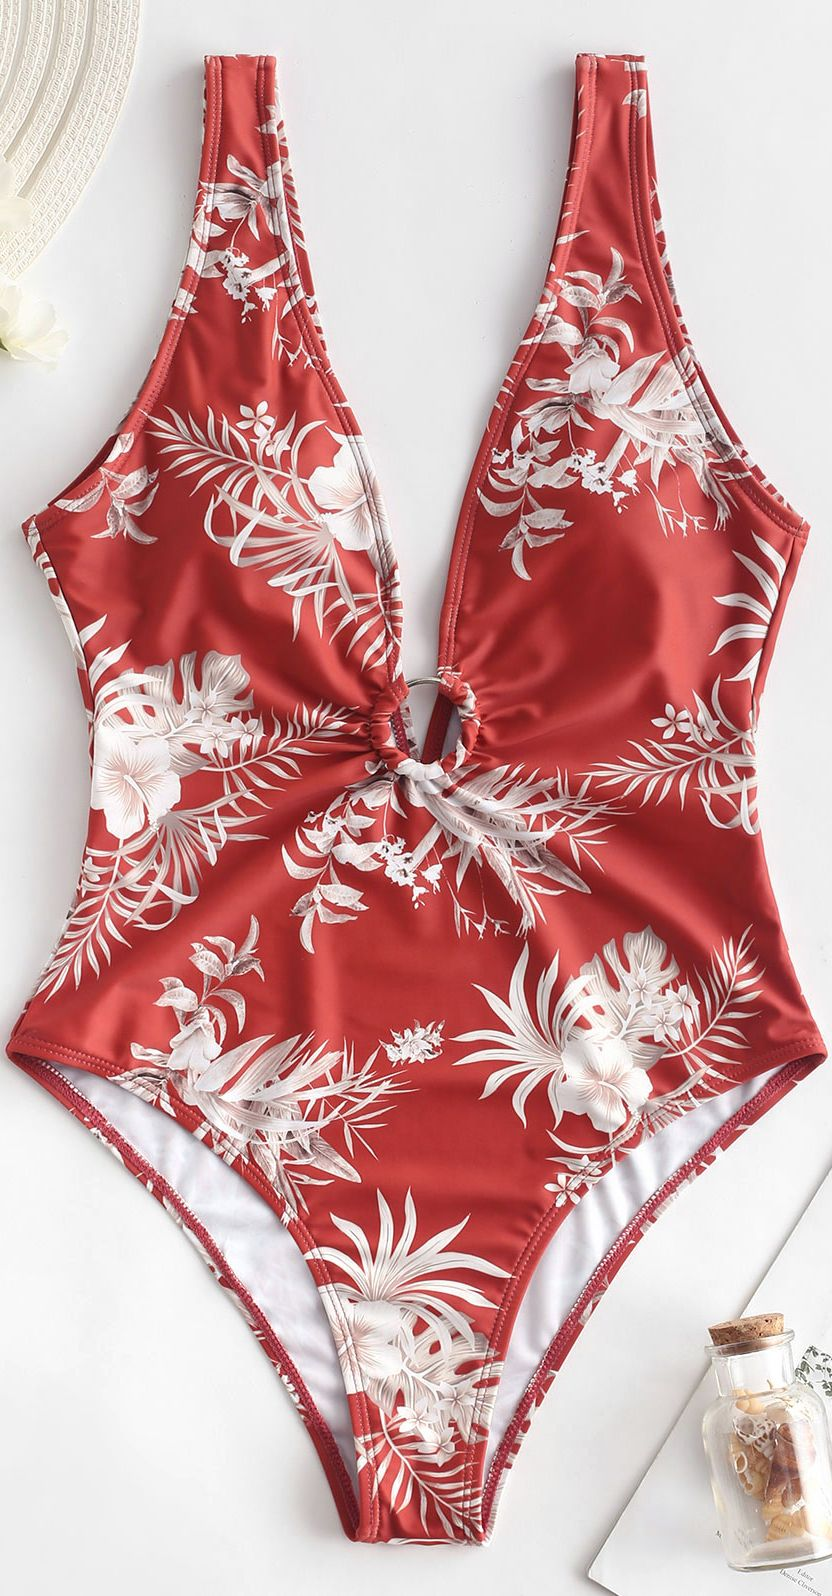 Floral Ring Embellished Plunging Swimsuit Plunge Swimsuit Piece Swimsuit One Piece Swimsuit